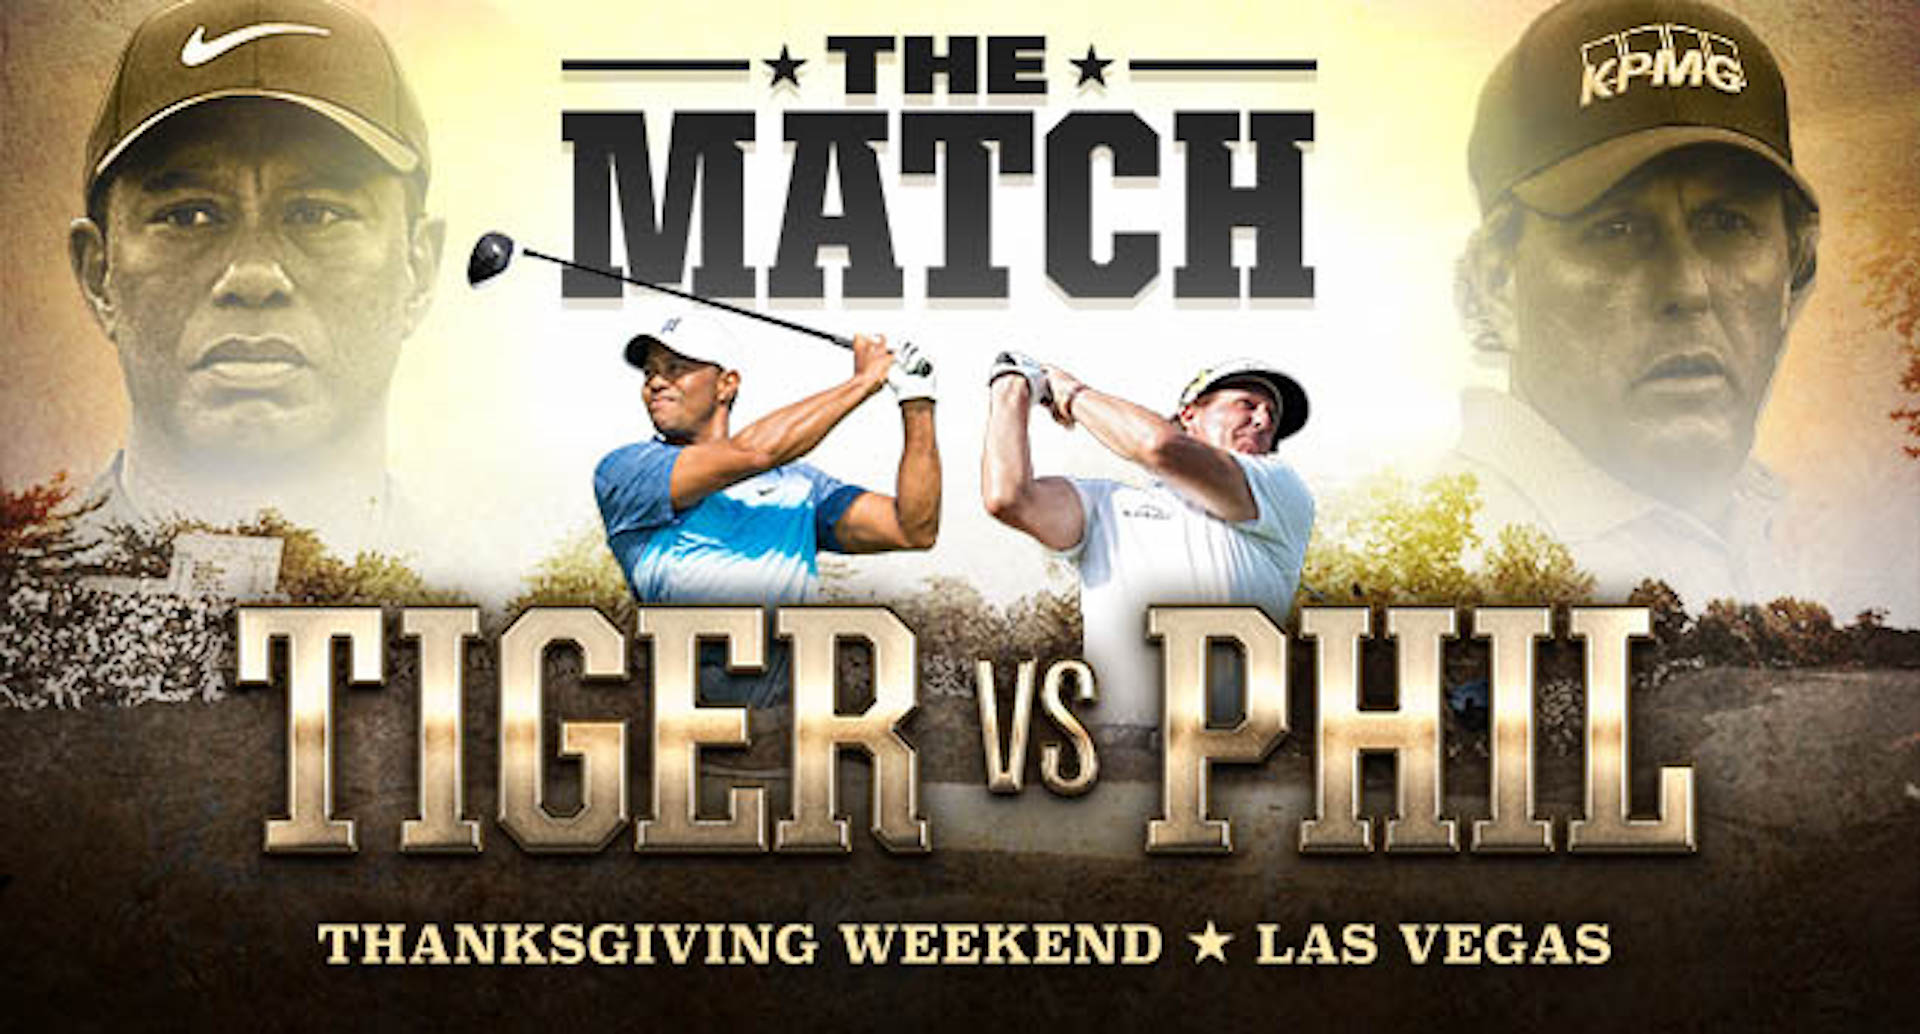 Why the Tiger Woods v Phil Mickelson 'Match' is bad for golf